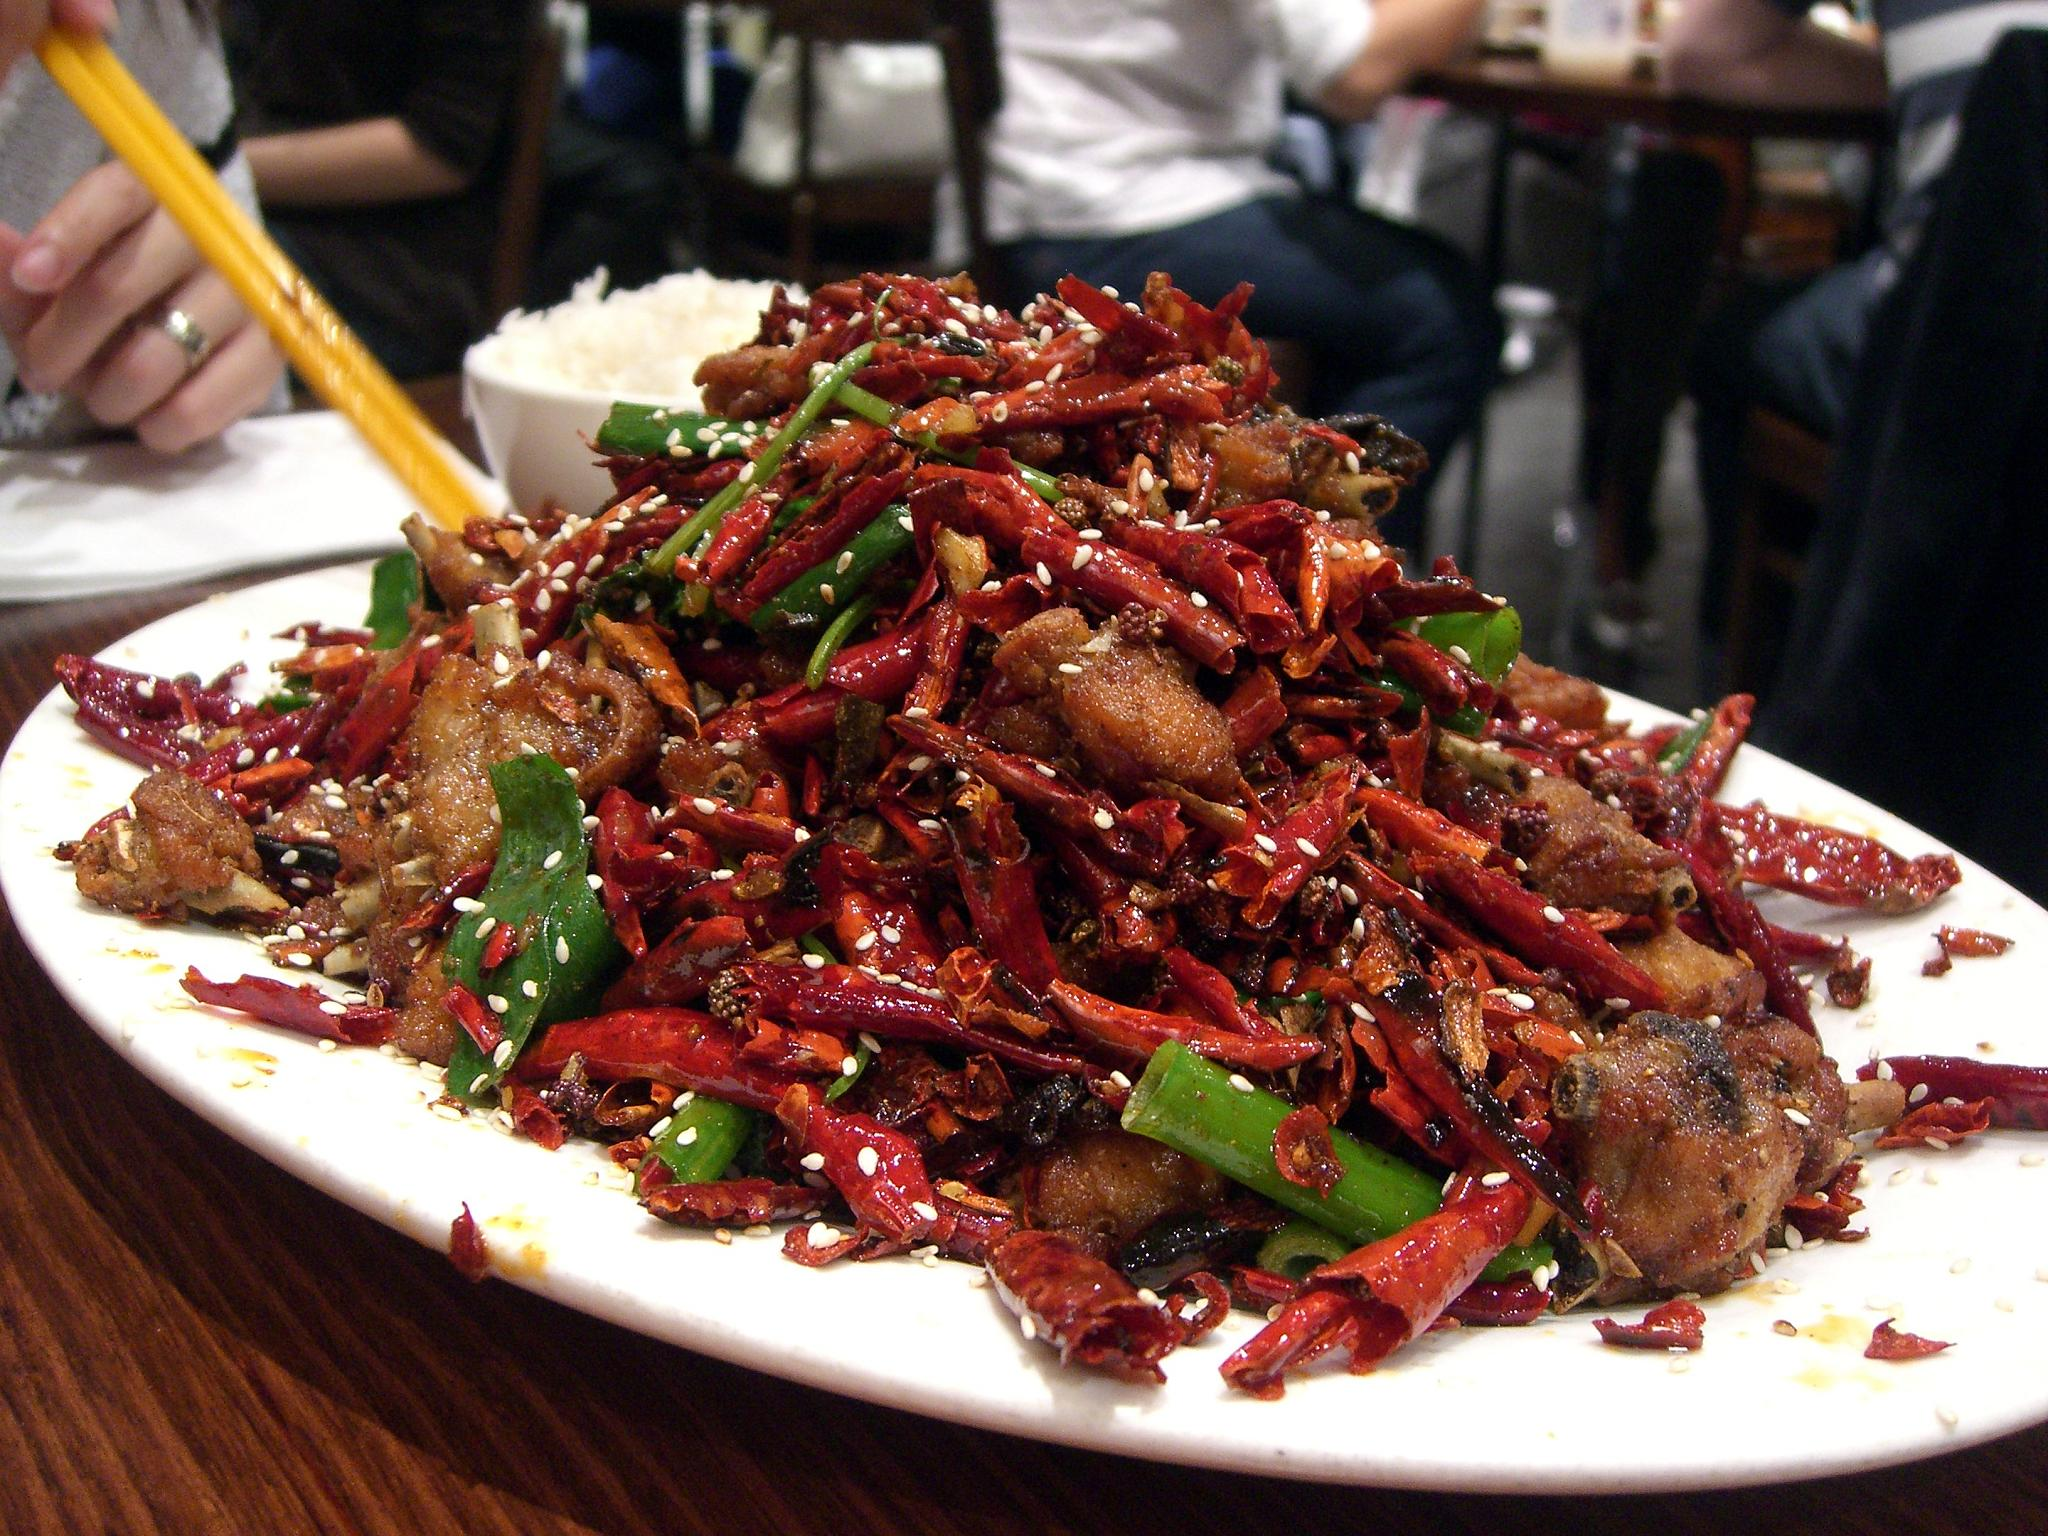 Cuisine Spicy 8 Hidden Health Benefits Of Spicy Food Supported By Science